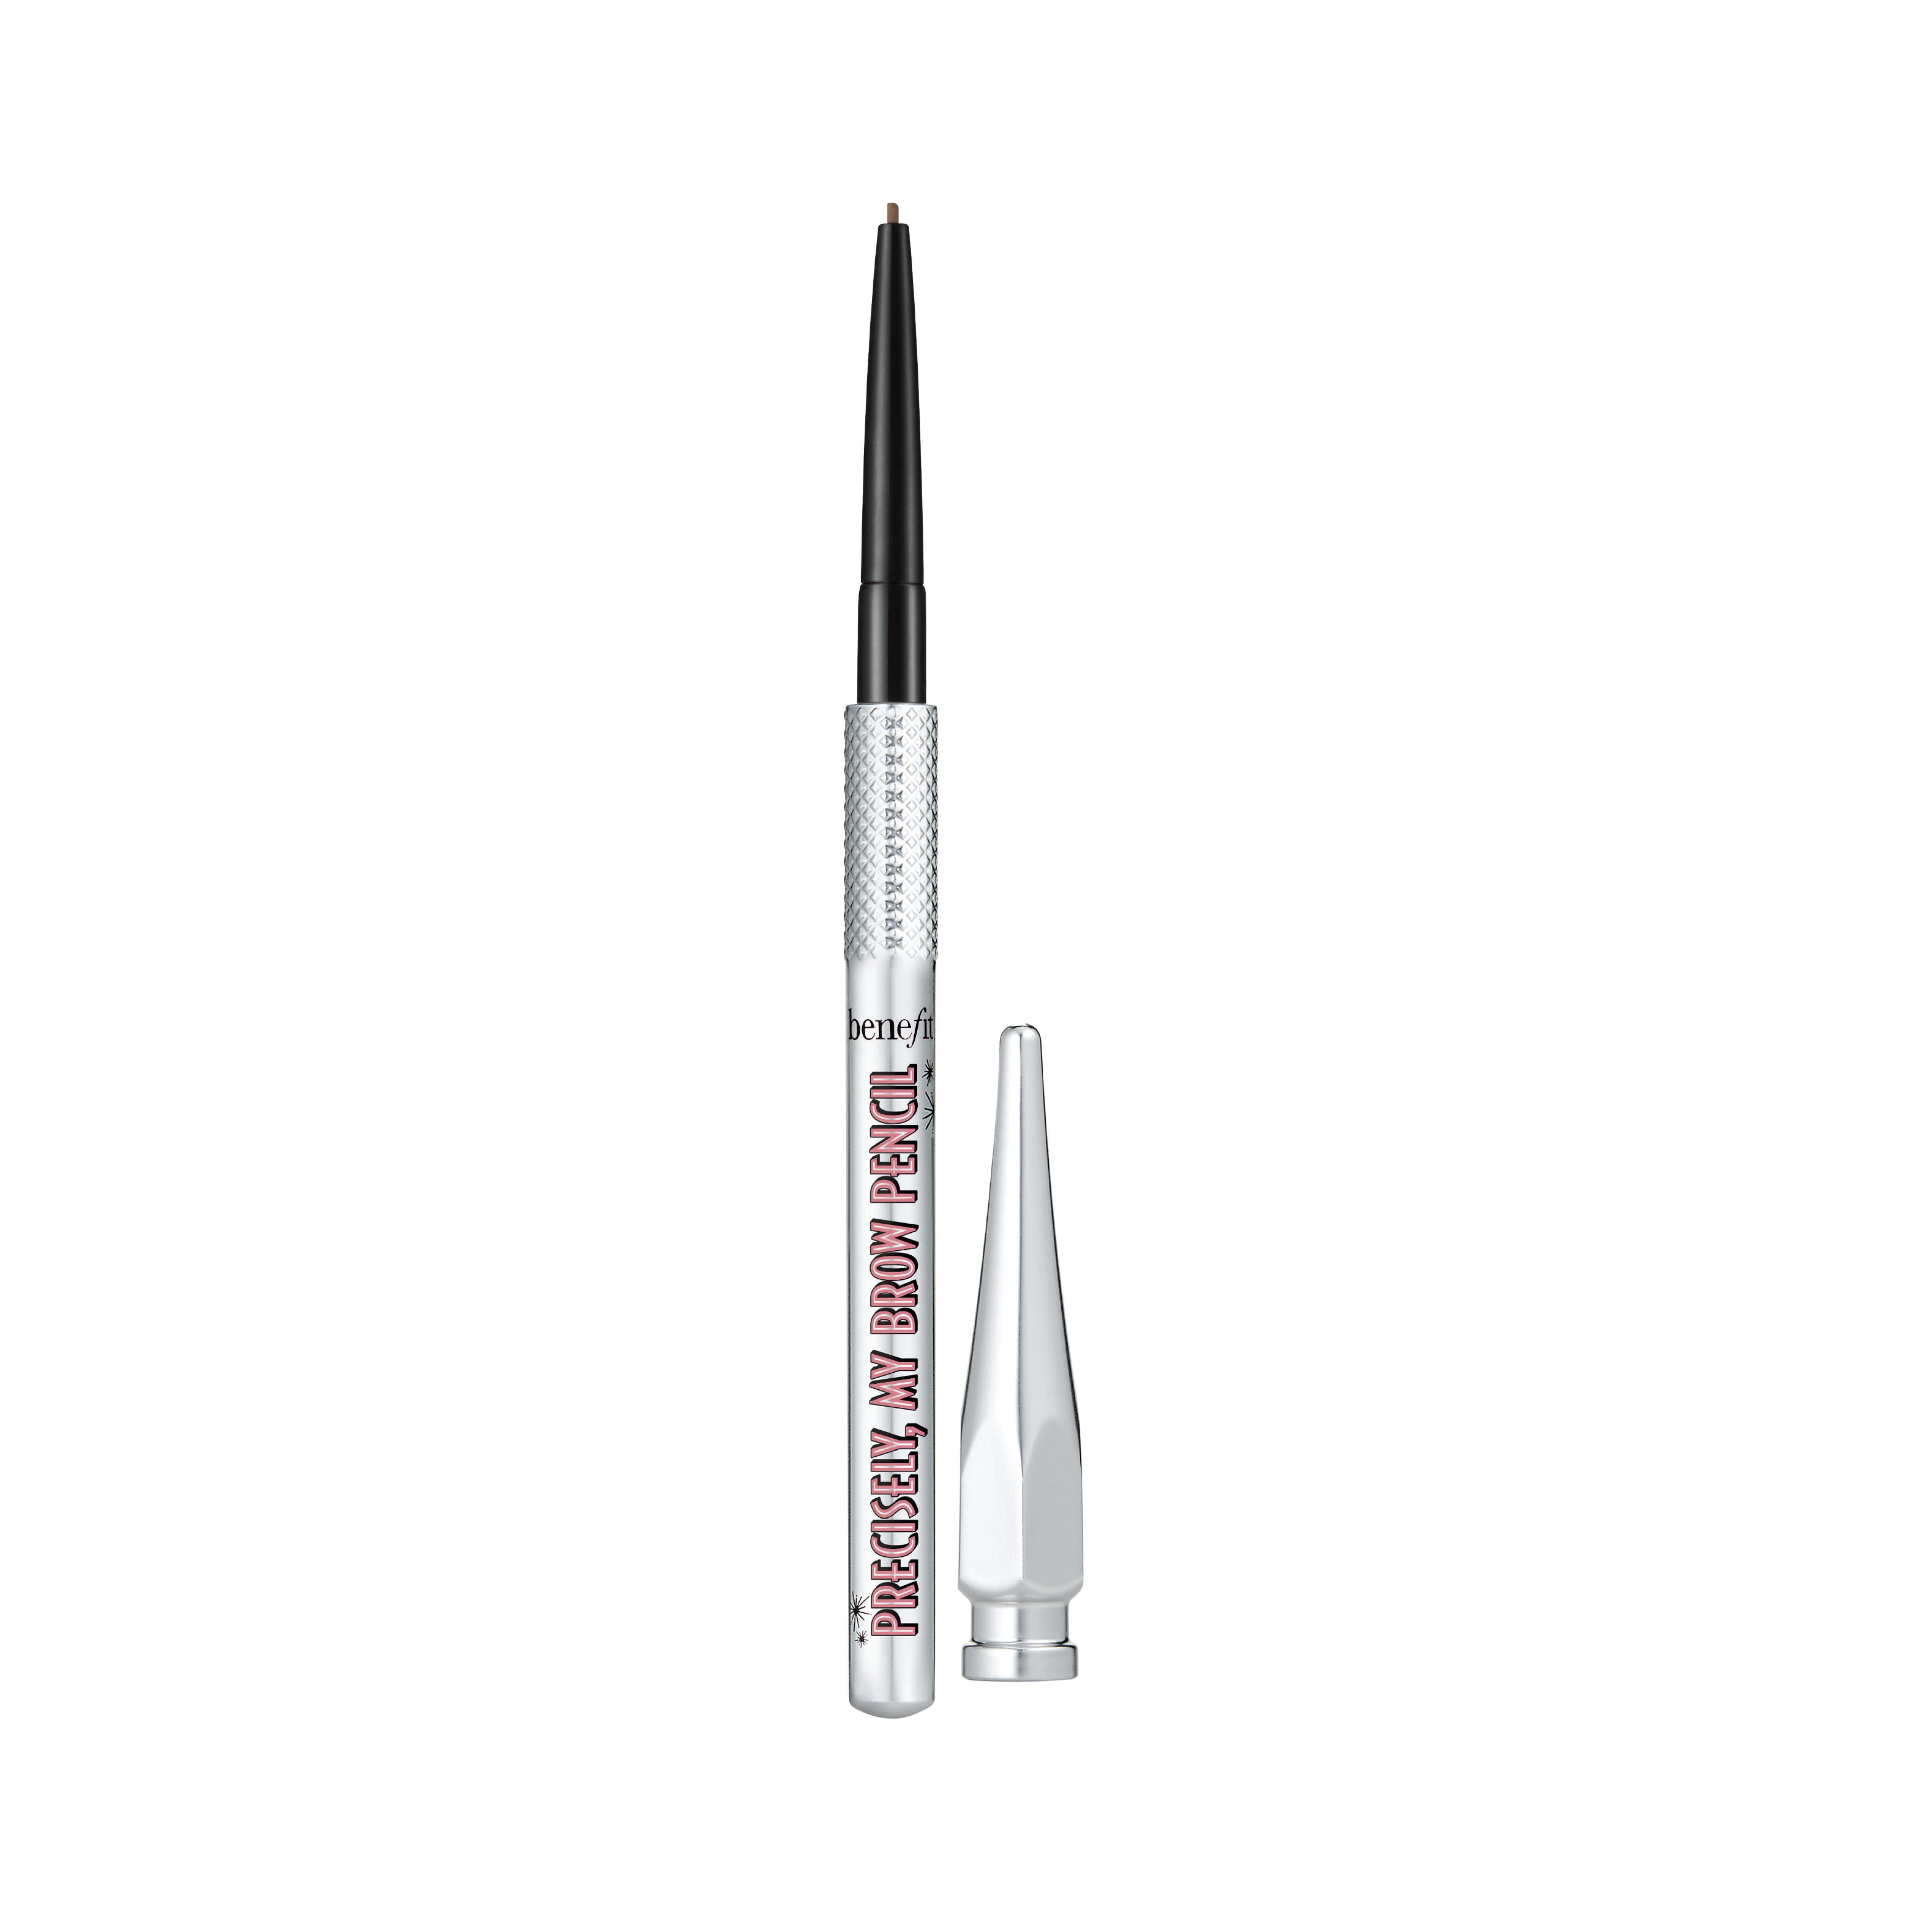 PRECISELY, MY BROW PENCIL MINI